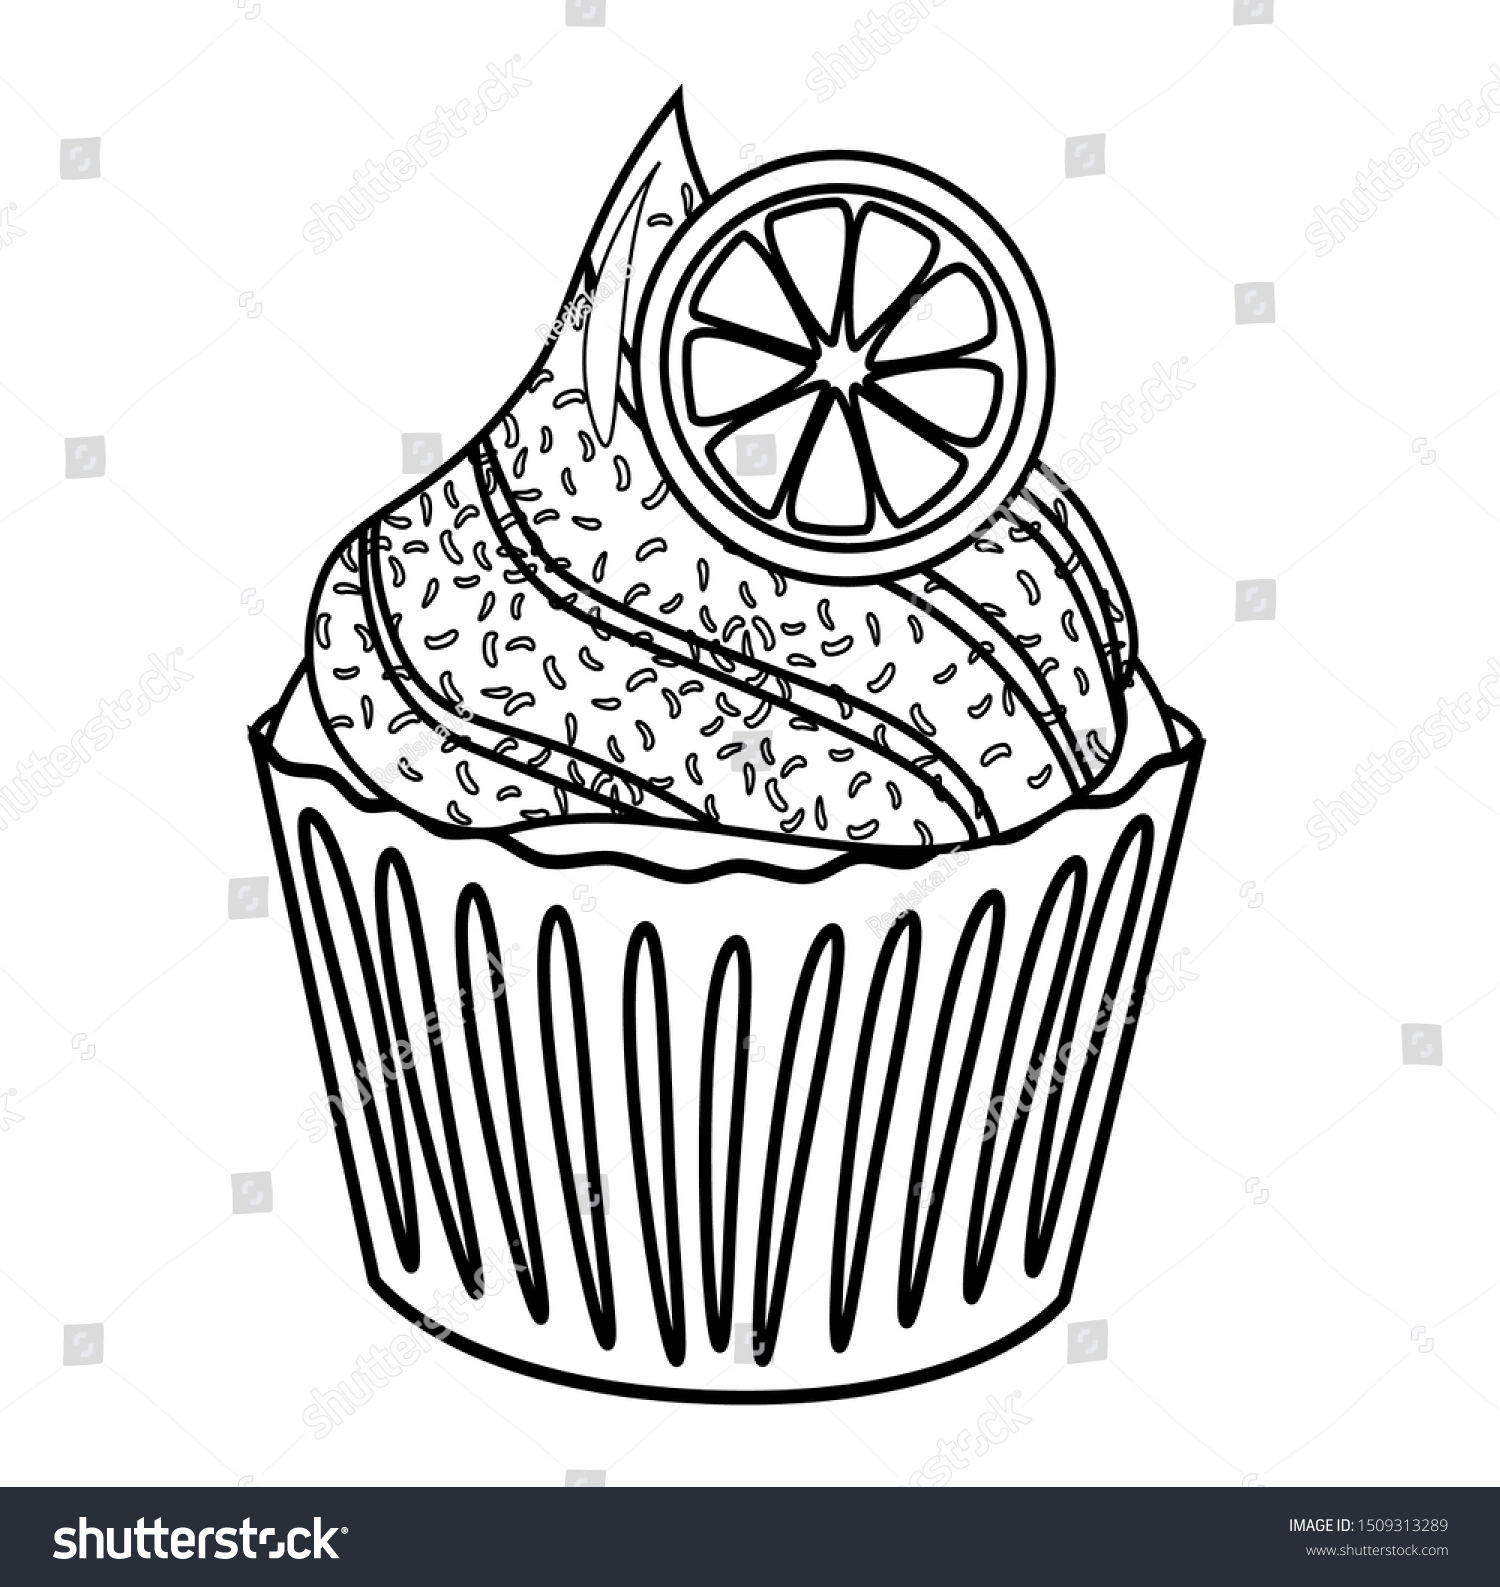 - Cupcake Coloring Book Vector Illustration Simple Stock Vector